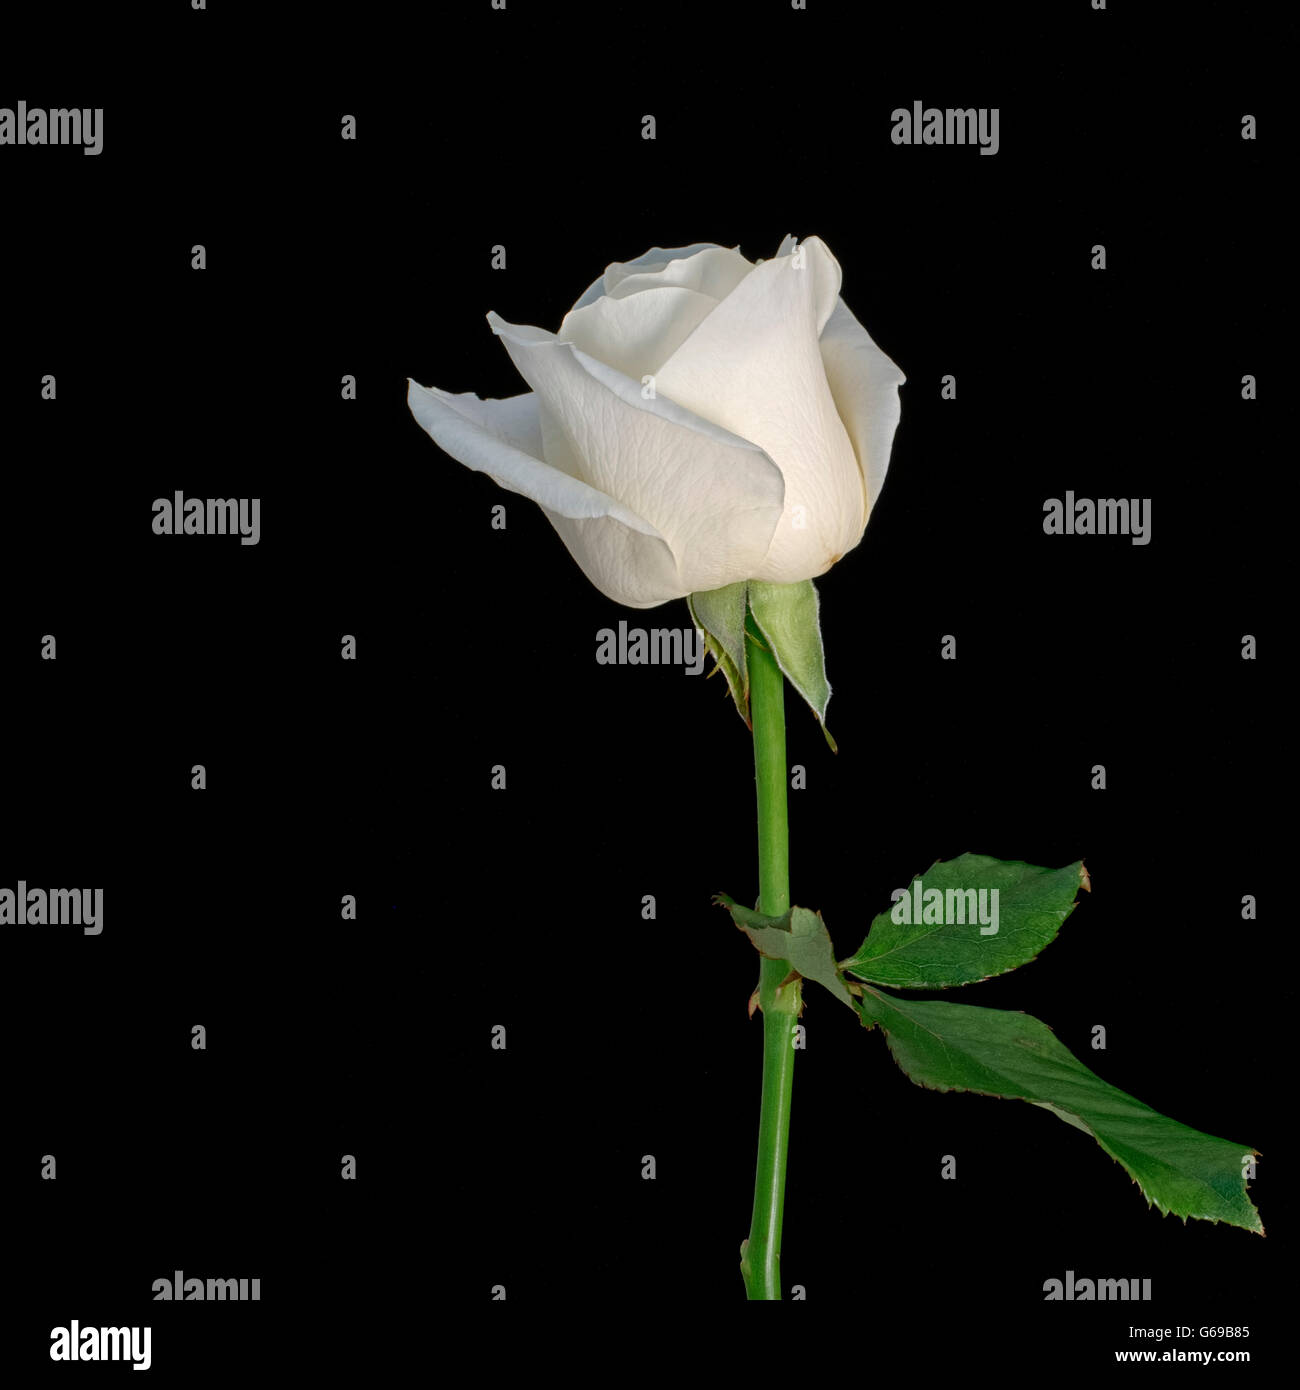 Aimple white rose isolated on black. - Stock Image